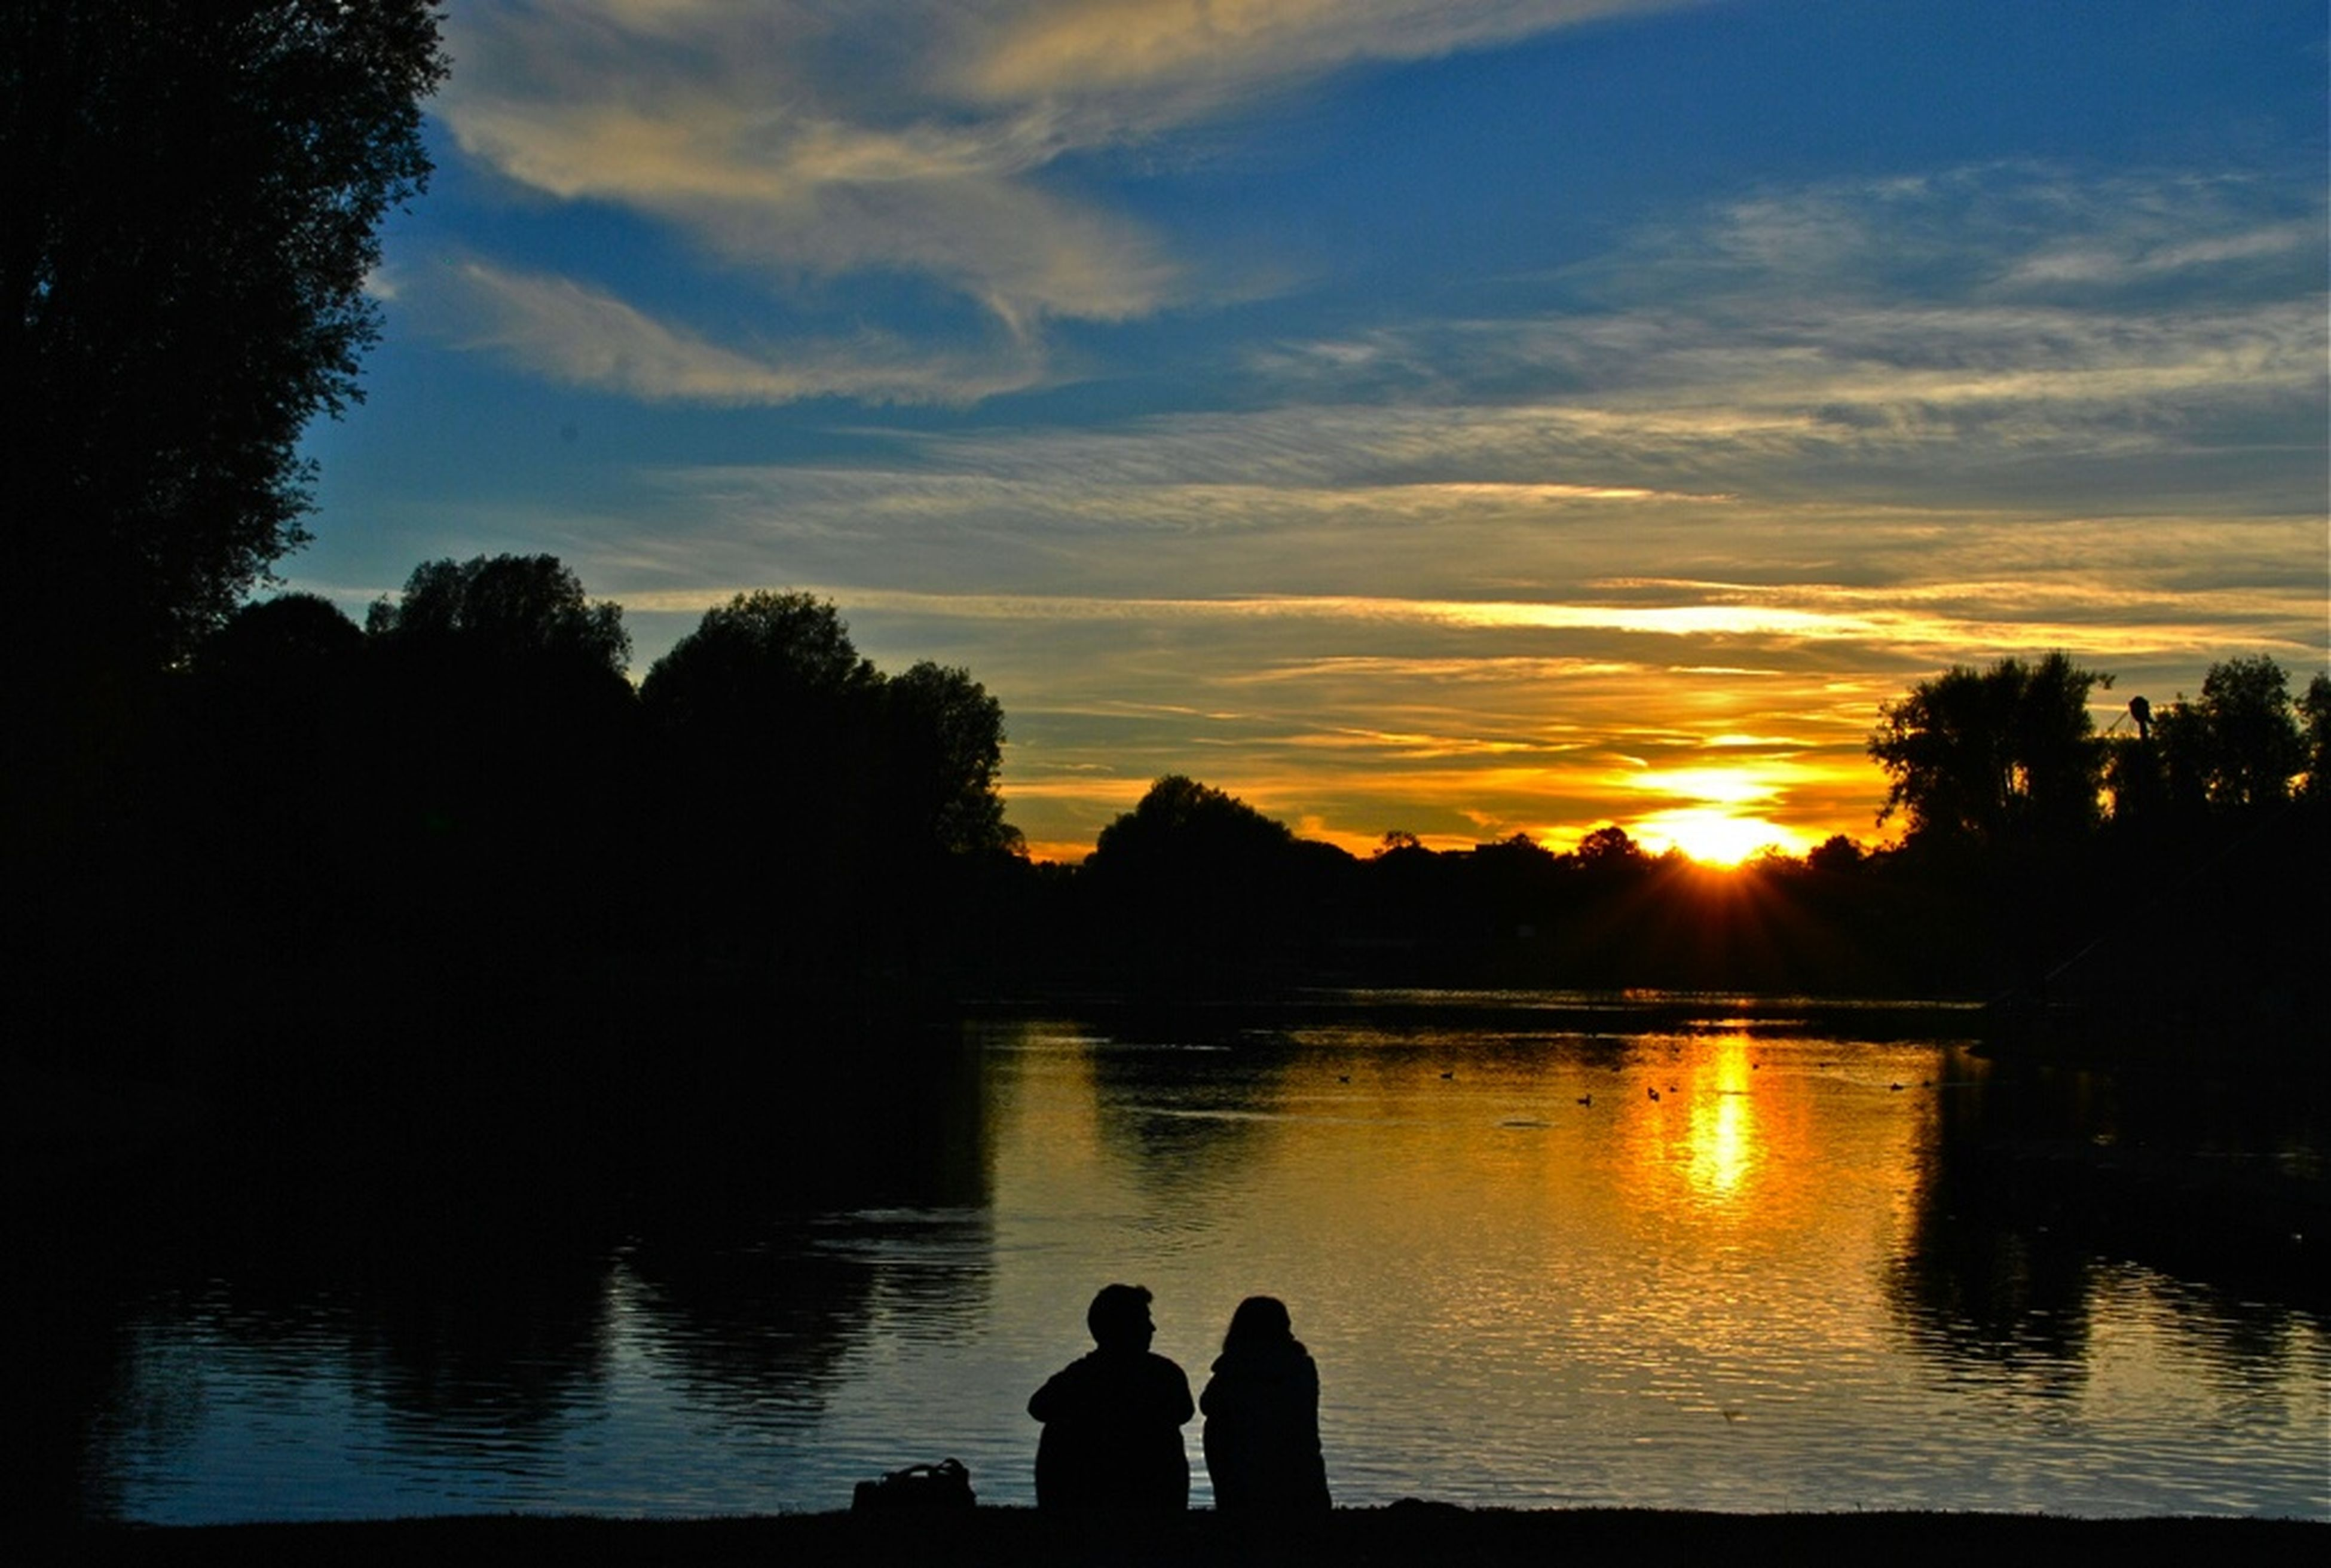 sunset, silhouette, water, lake, reflection, sky, scenics, beauty in nature, tranquil scene, tranquility, tree, nature, idyllic, animal themes, orange color, river, cloud - sky, sun, lakeshore, wildlife